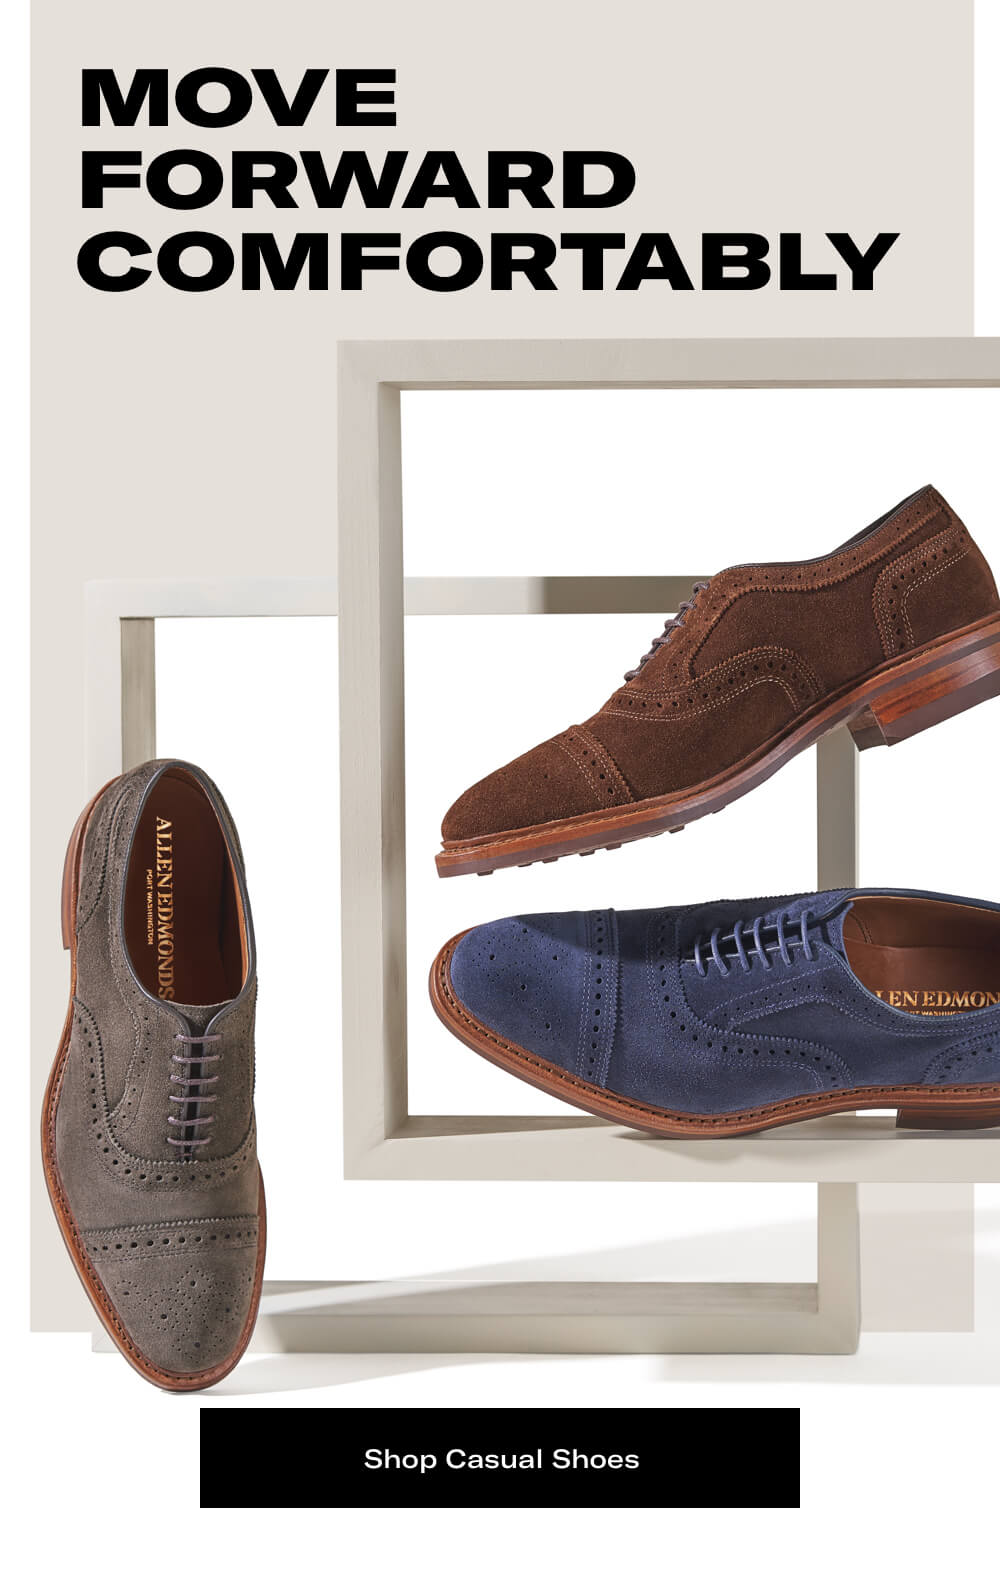 Move forward comfortably - Shop Casual Shoes